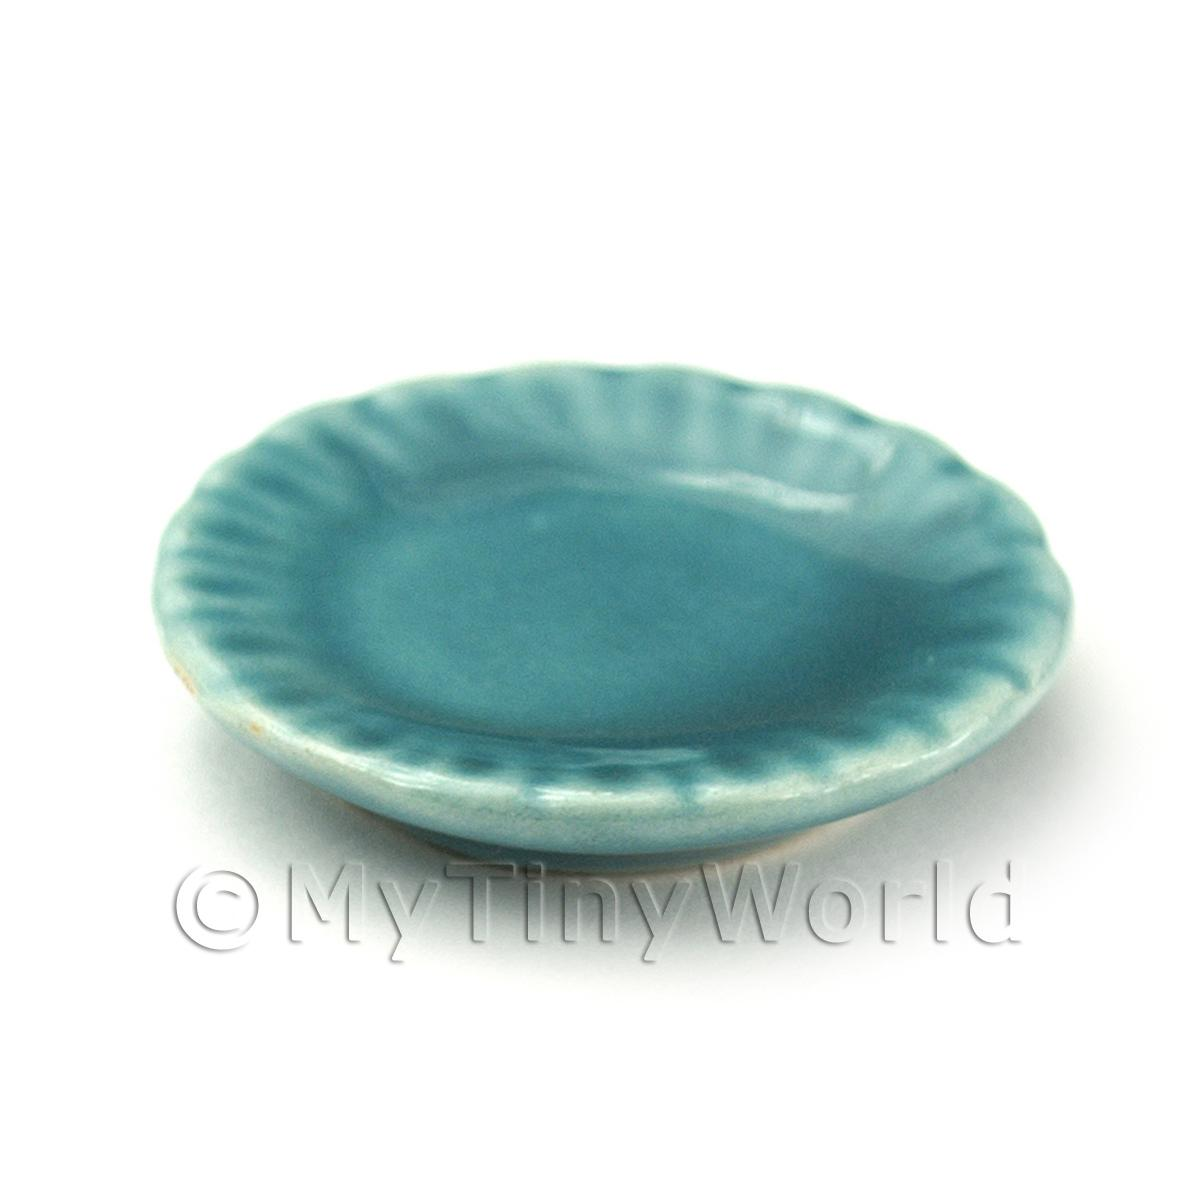 Dolls House Miniature 25mm Fluted Aquamarine Plate